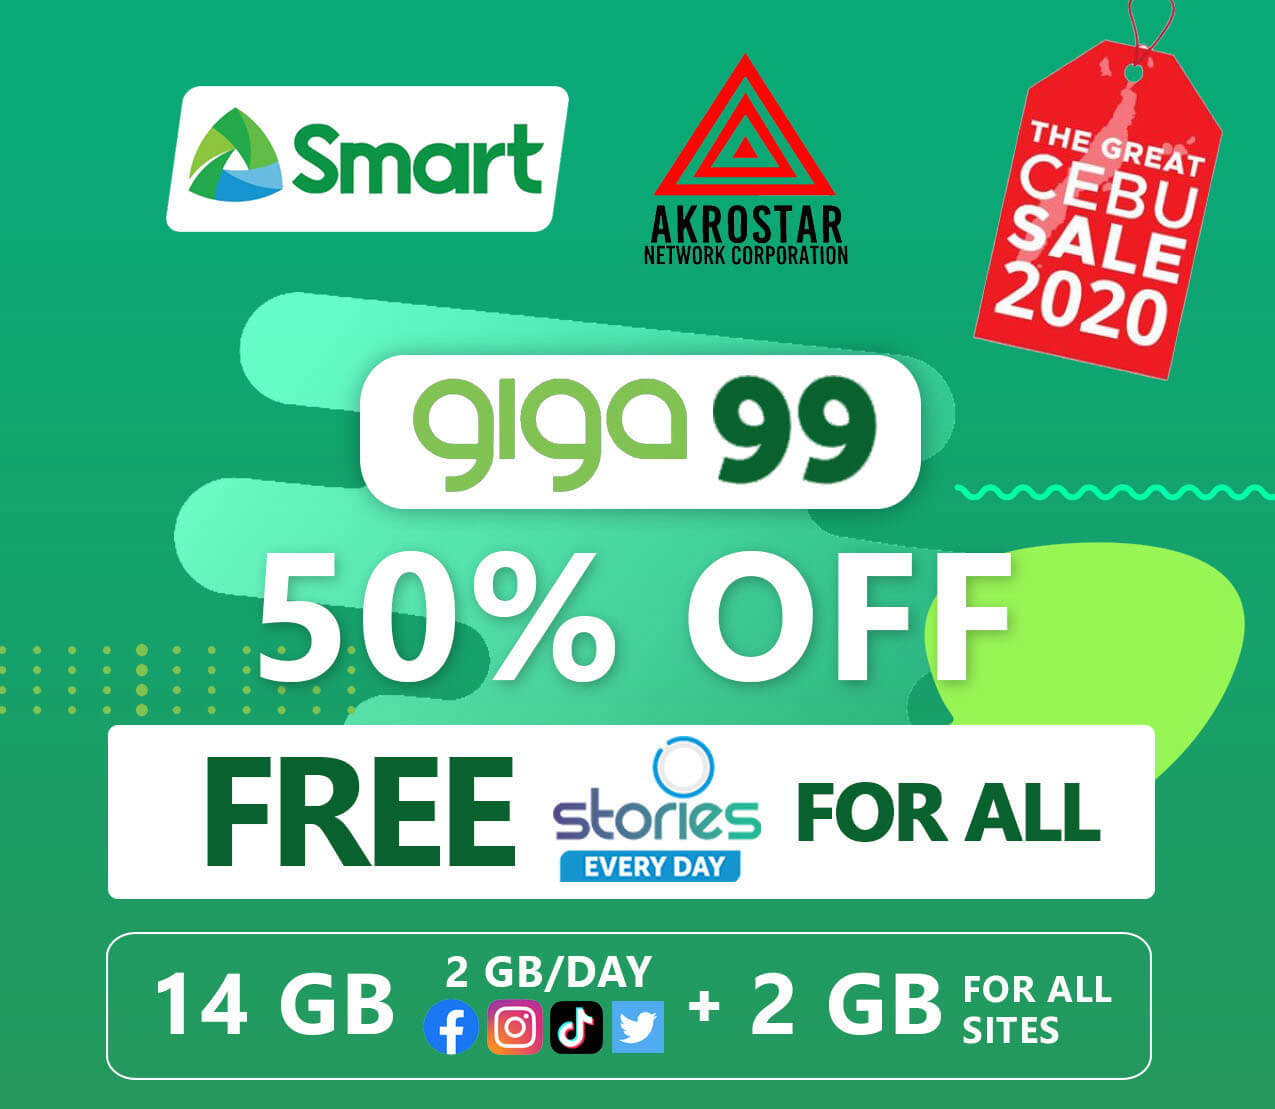 Get more data with Smart's Giga offers